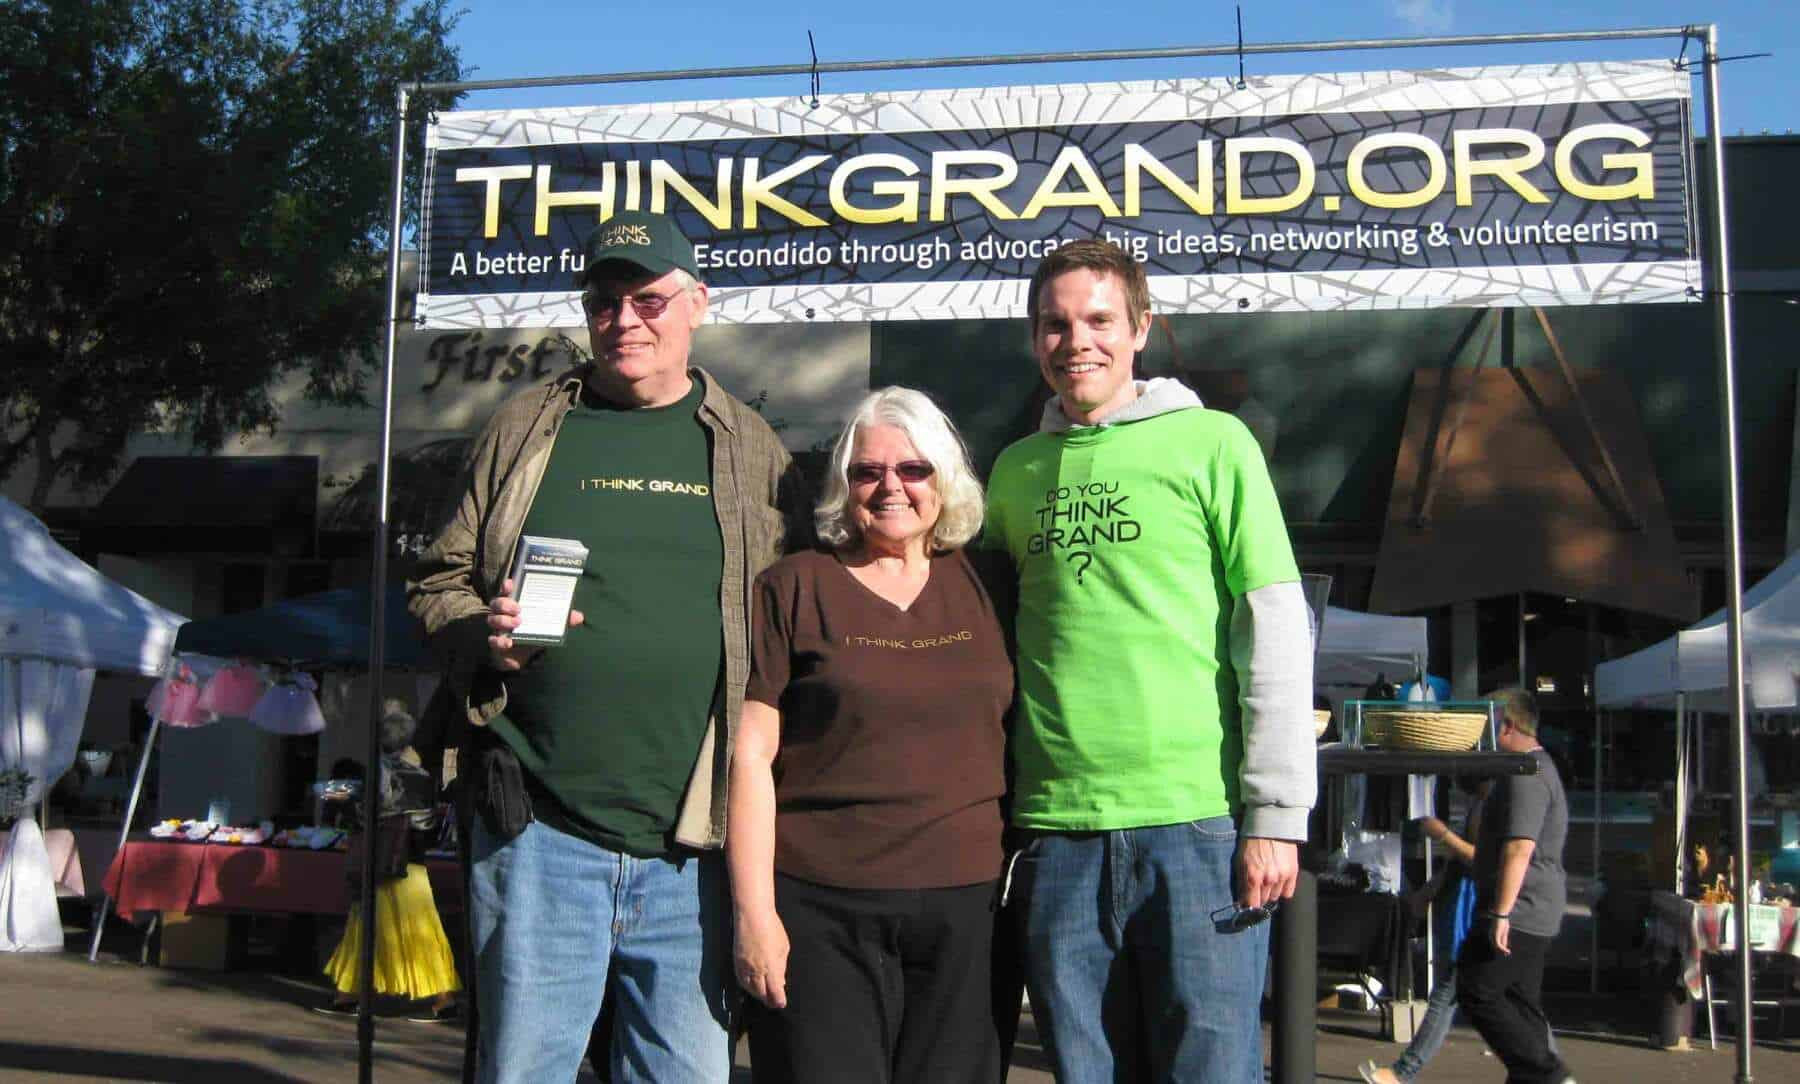 Dave Woods & his parents stand in front of a booth below a banner that reads thinkgrand.org.